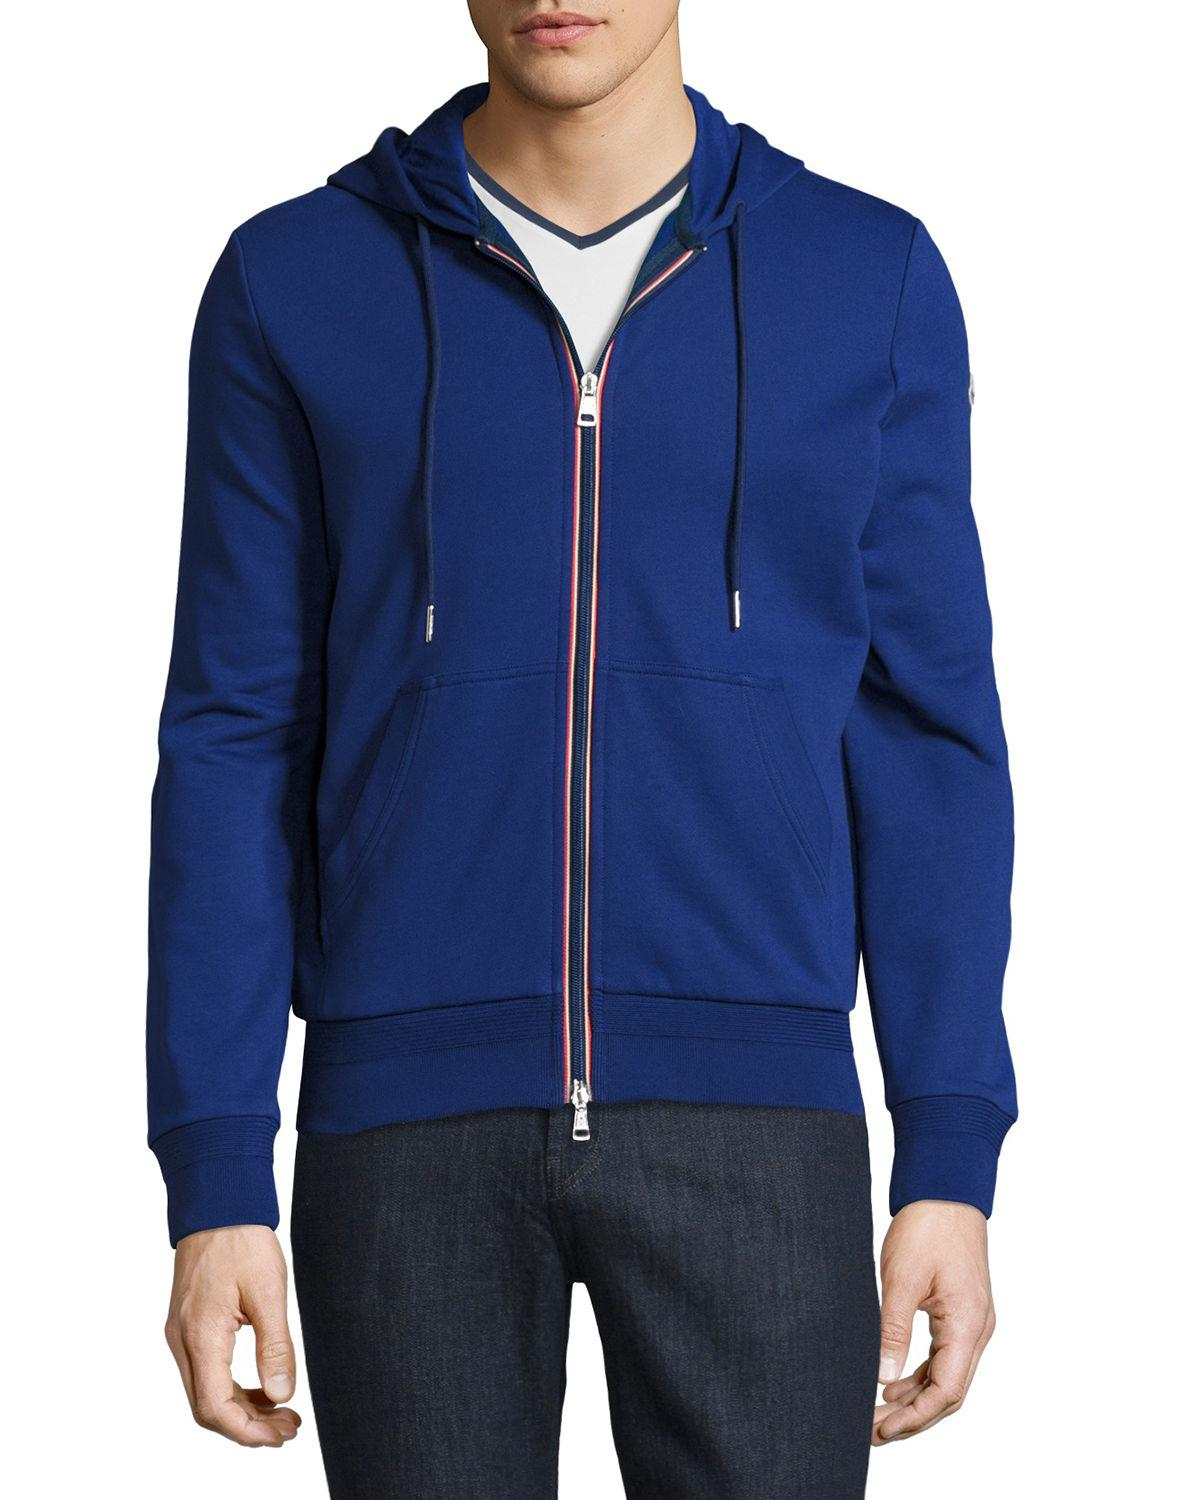 7bb858ae7 Lyst - Moncler Tricolor-trim Zip-front Hoodie in Blue for Men